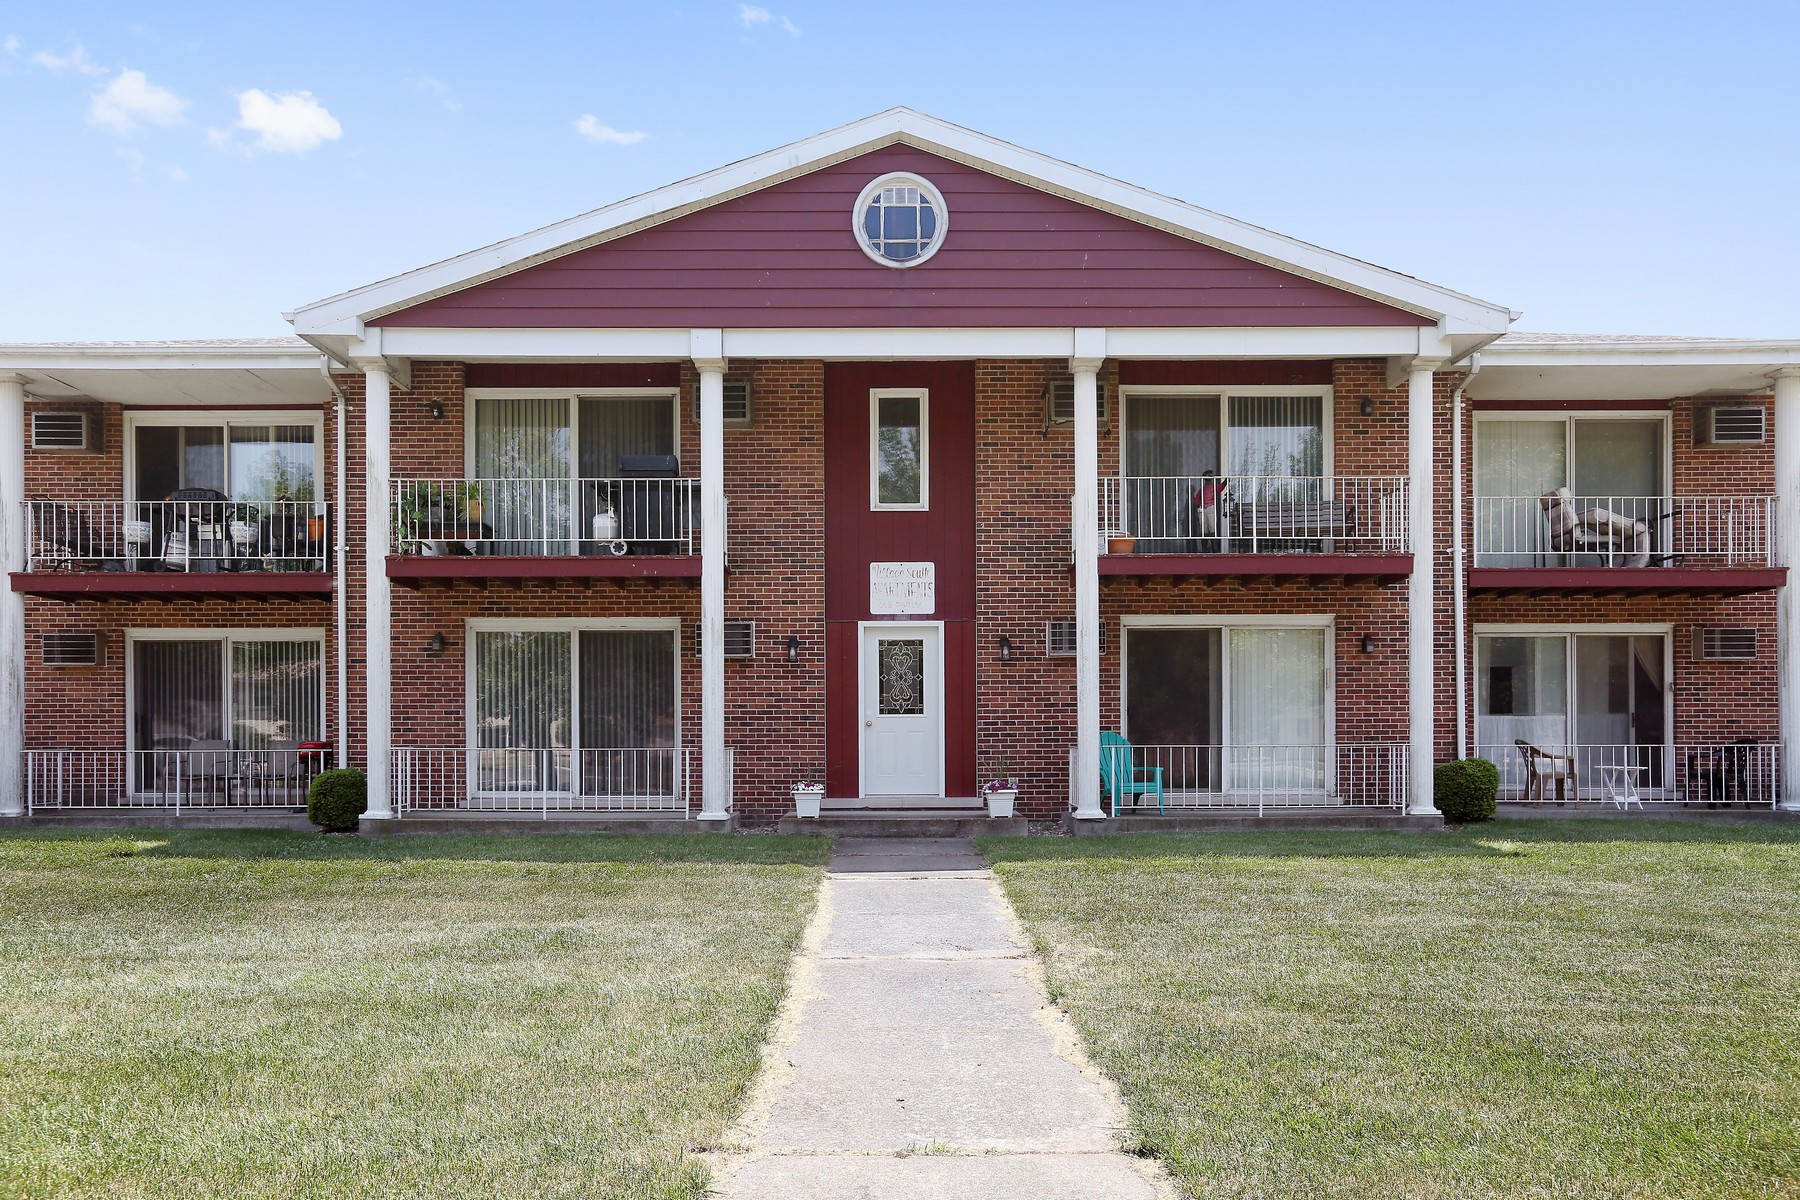 Multi-Family Home for Sale at Incredible turn key investment opportunity 648 Pasadena Avenue Beecher, Illinois 60401 United States